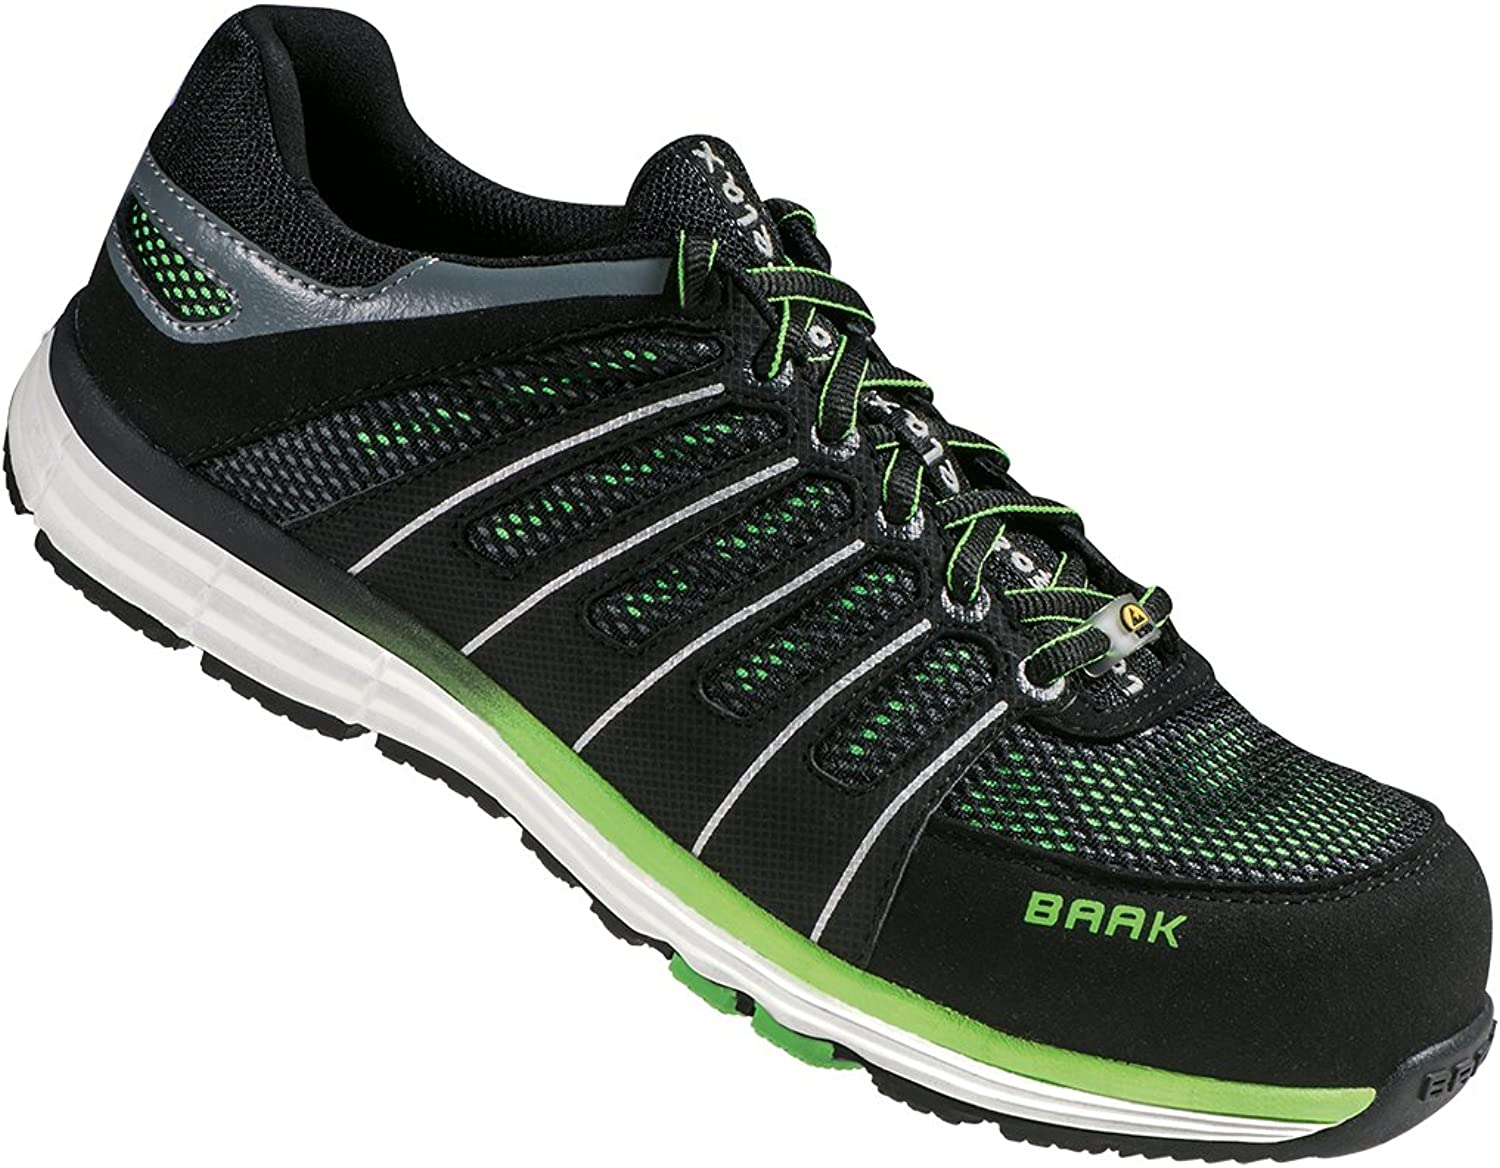 Baak Reeny, Unisex Adults' SRC Safety shoes, Multicolour (Black Green), 6.5 UK (40 EU)